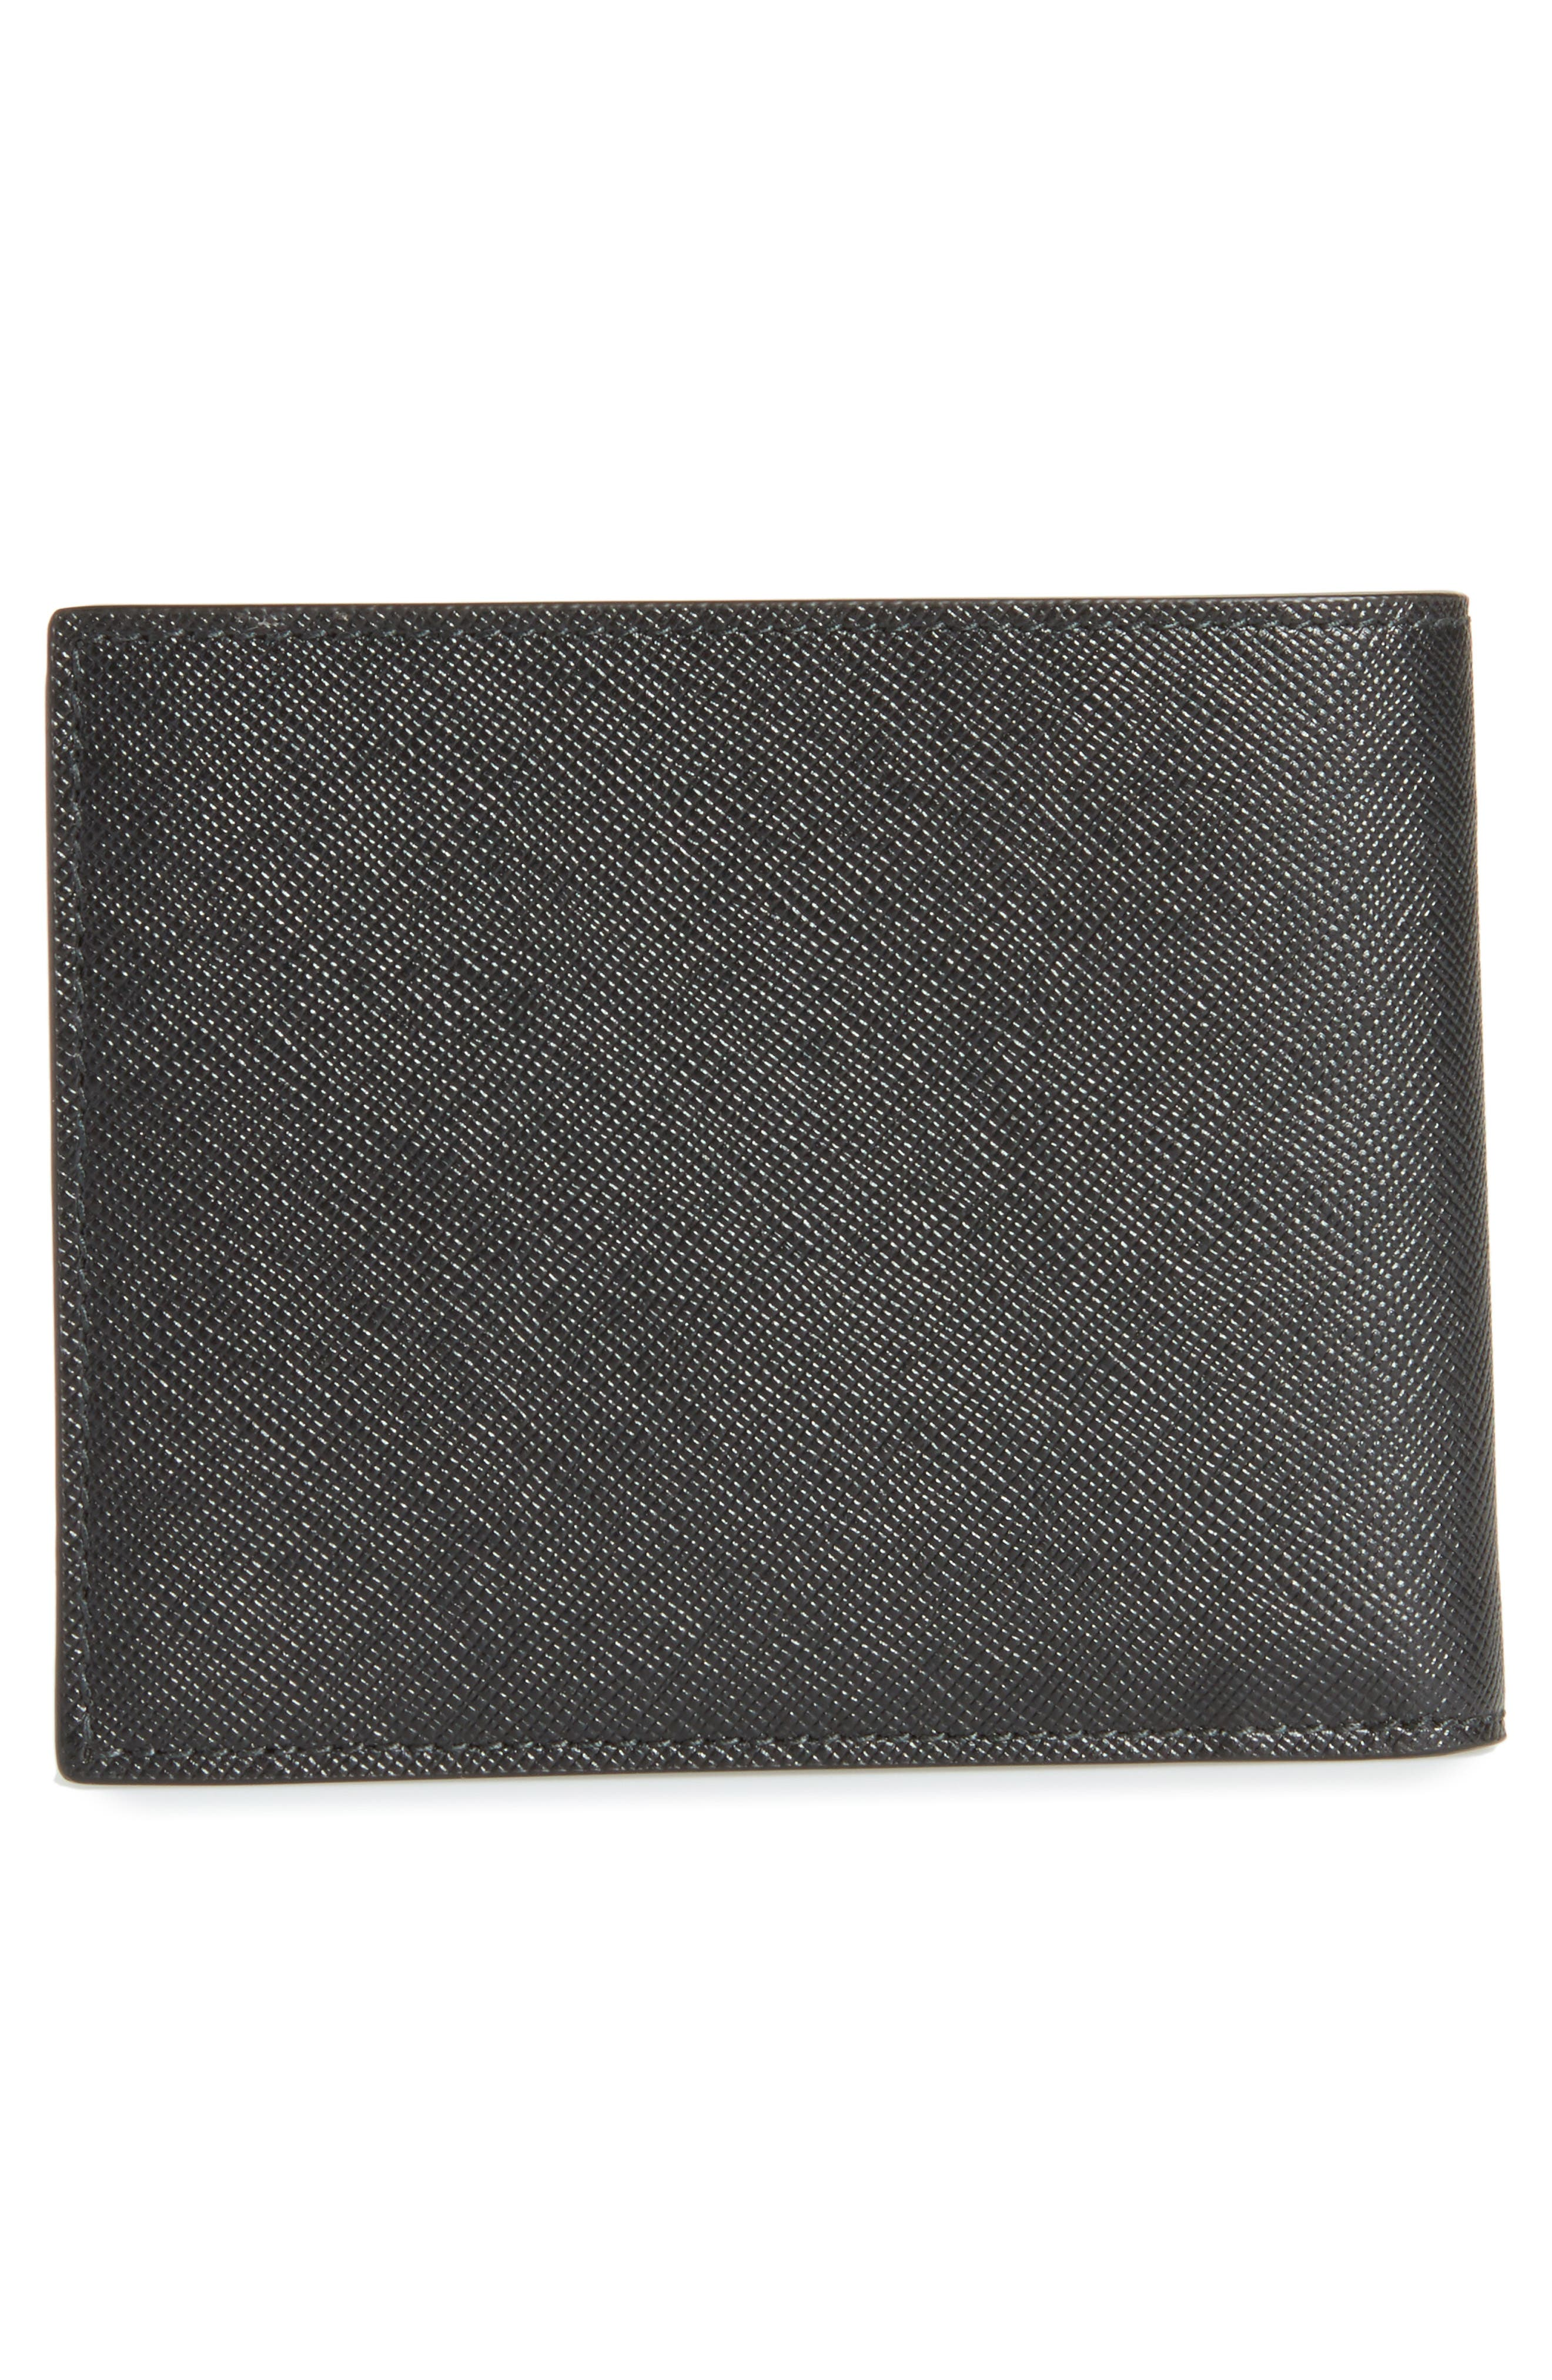 Sartorial Leather Bifold Wallet,                             Alternate thumbnail 3, color,                             001